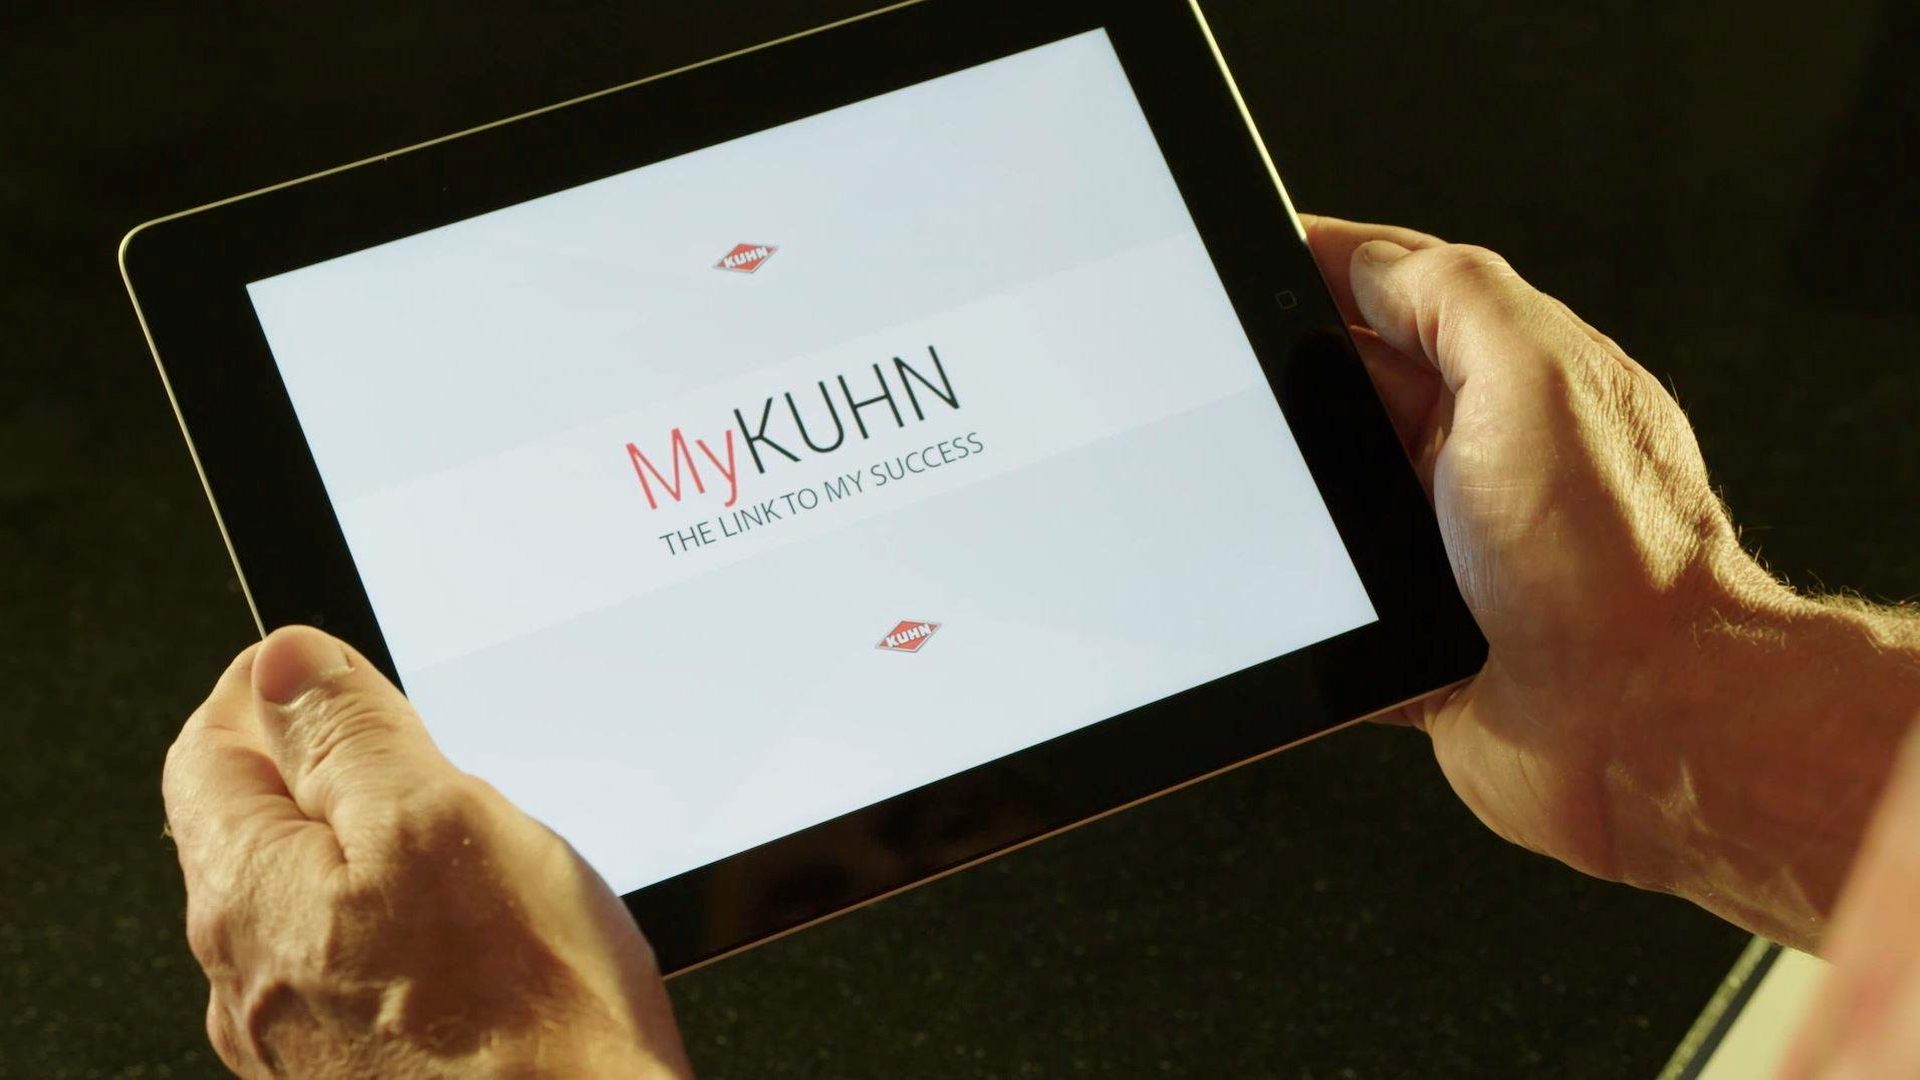 Burdens Group Limited Kuhn Launches New Online Customer Portal MyKuhn